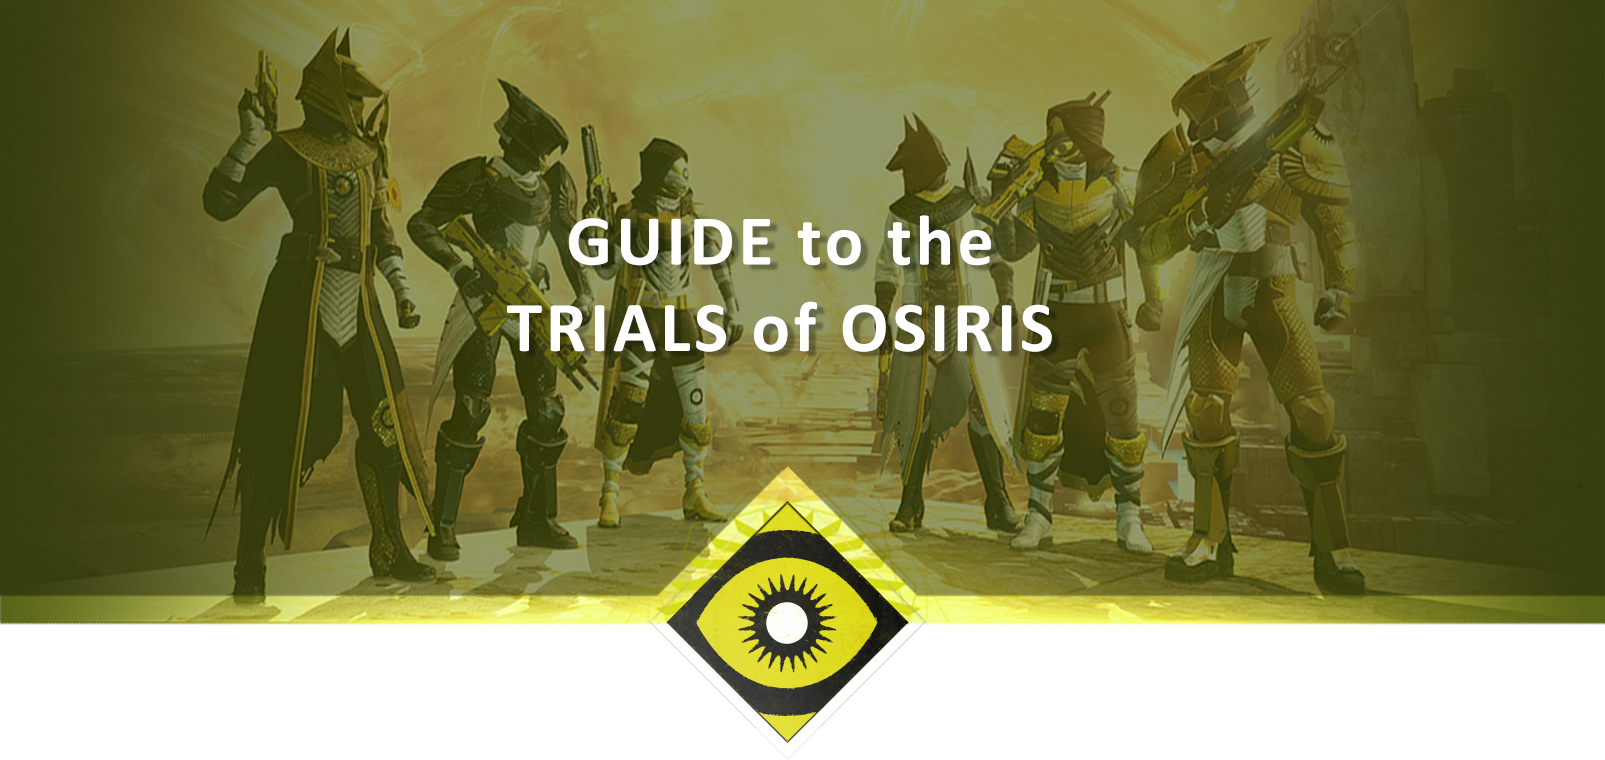 GUIDE TO THE TRIALS OF OSIRIS